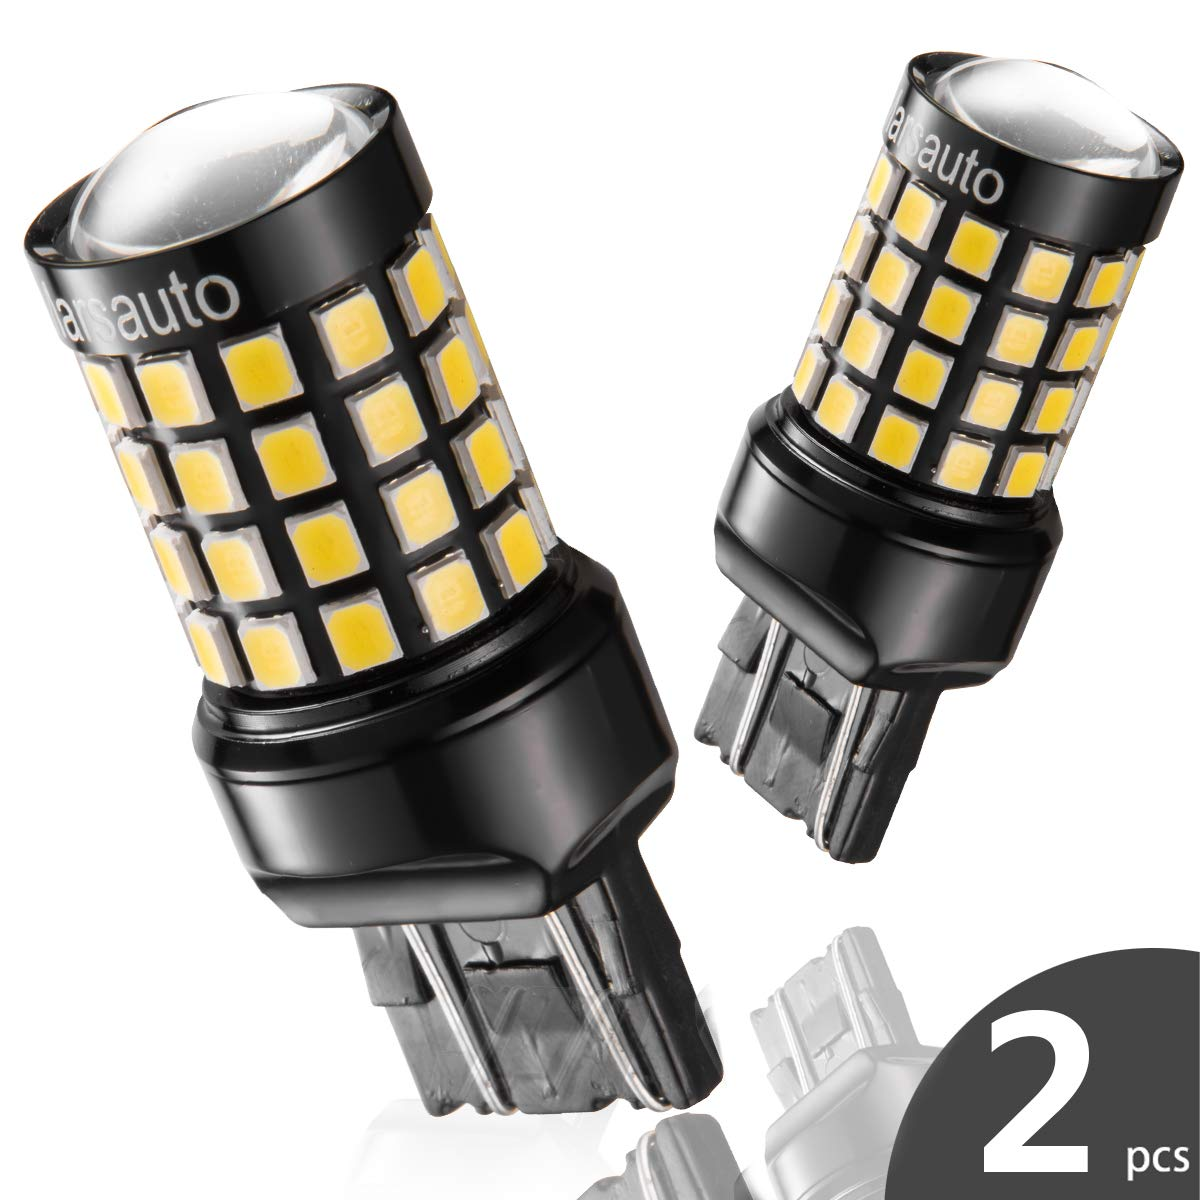 7443 7440 T20 LED Reverse Backup Bulb Extremely Bright, [2018 UPGRADED]  Marsauto 52 SMD 3030/2835 Chipsets Back up Stop Tail Light Lamp Bulbs